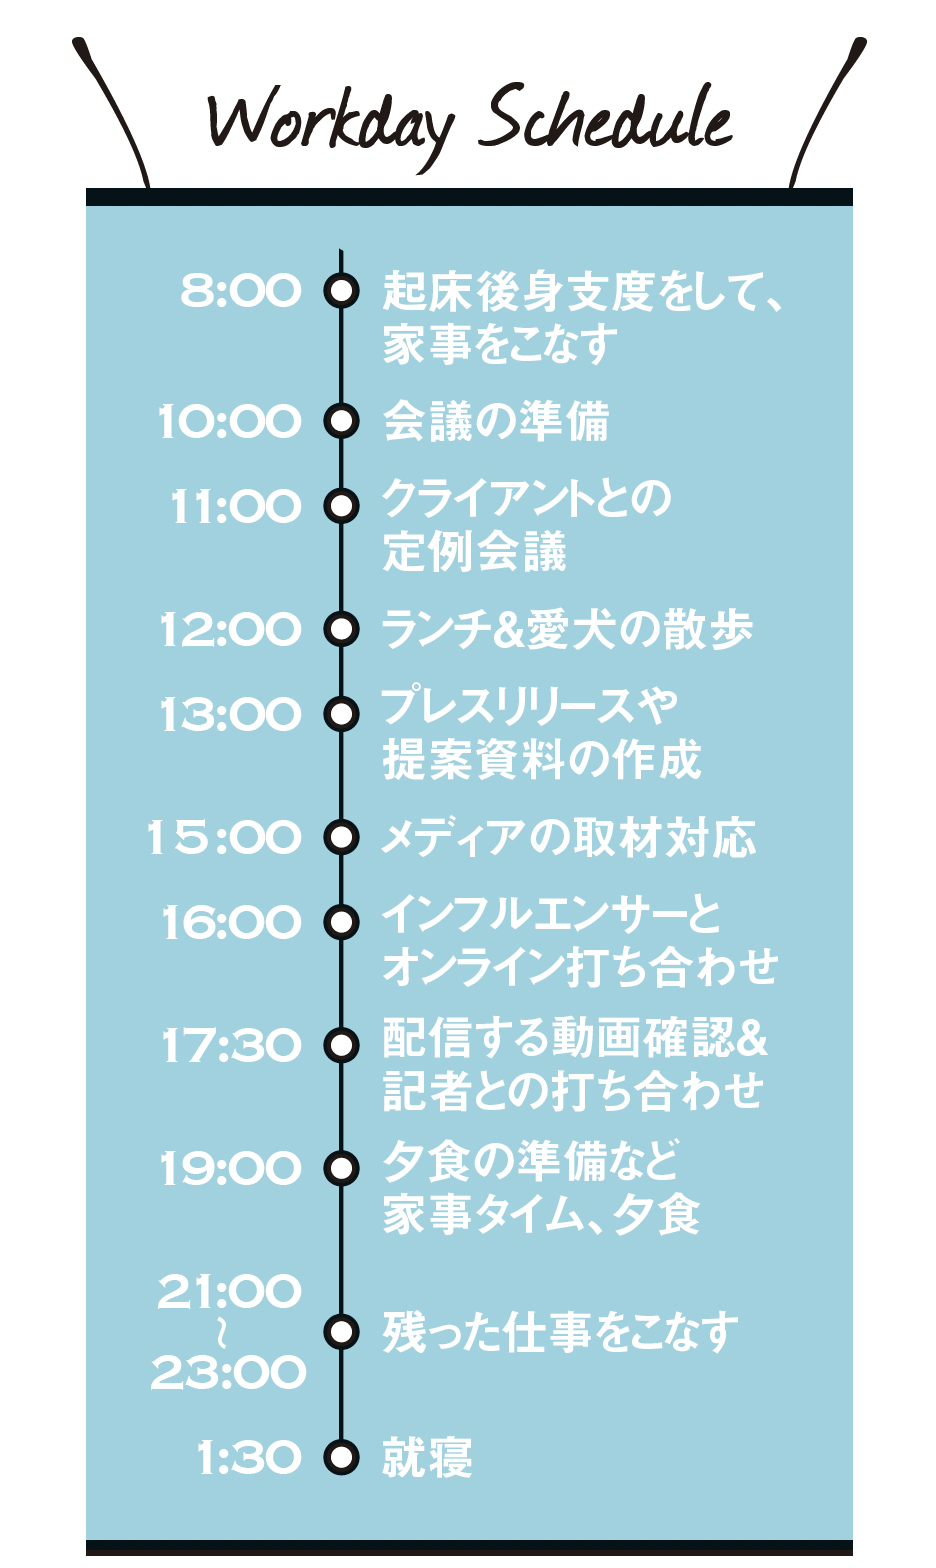 Workday Schedule